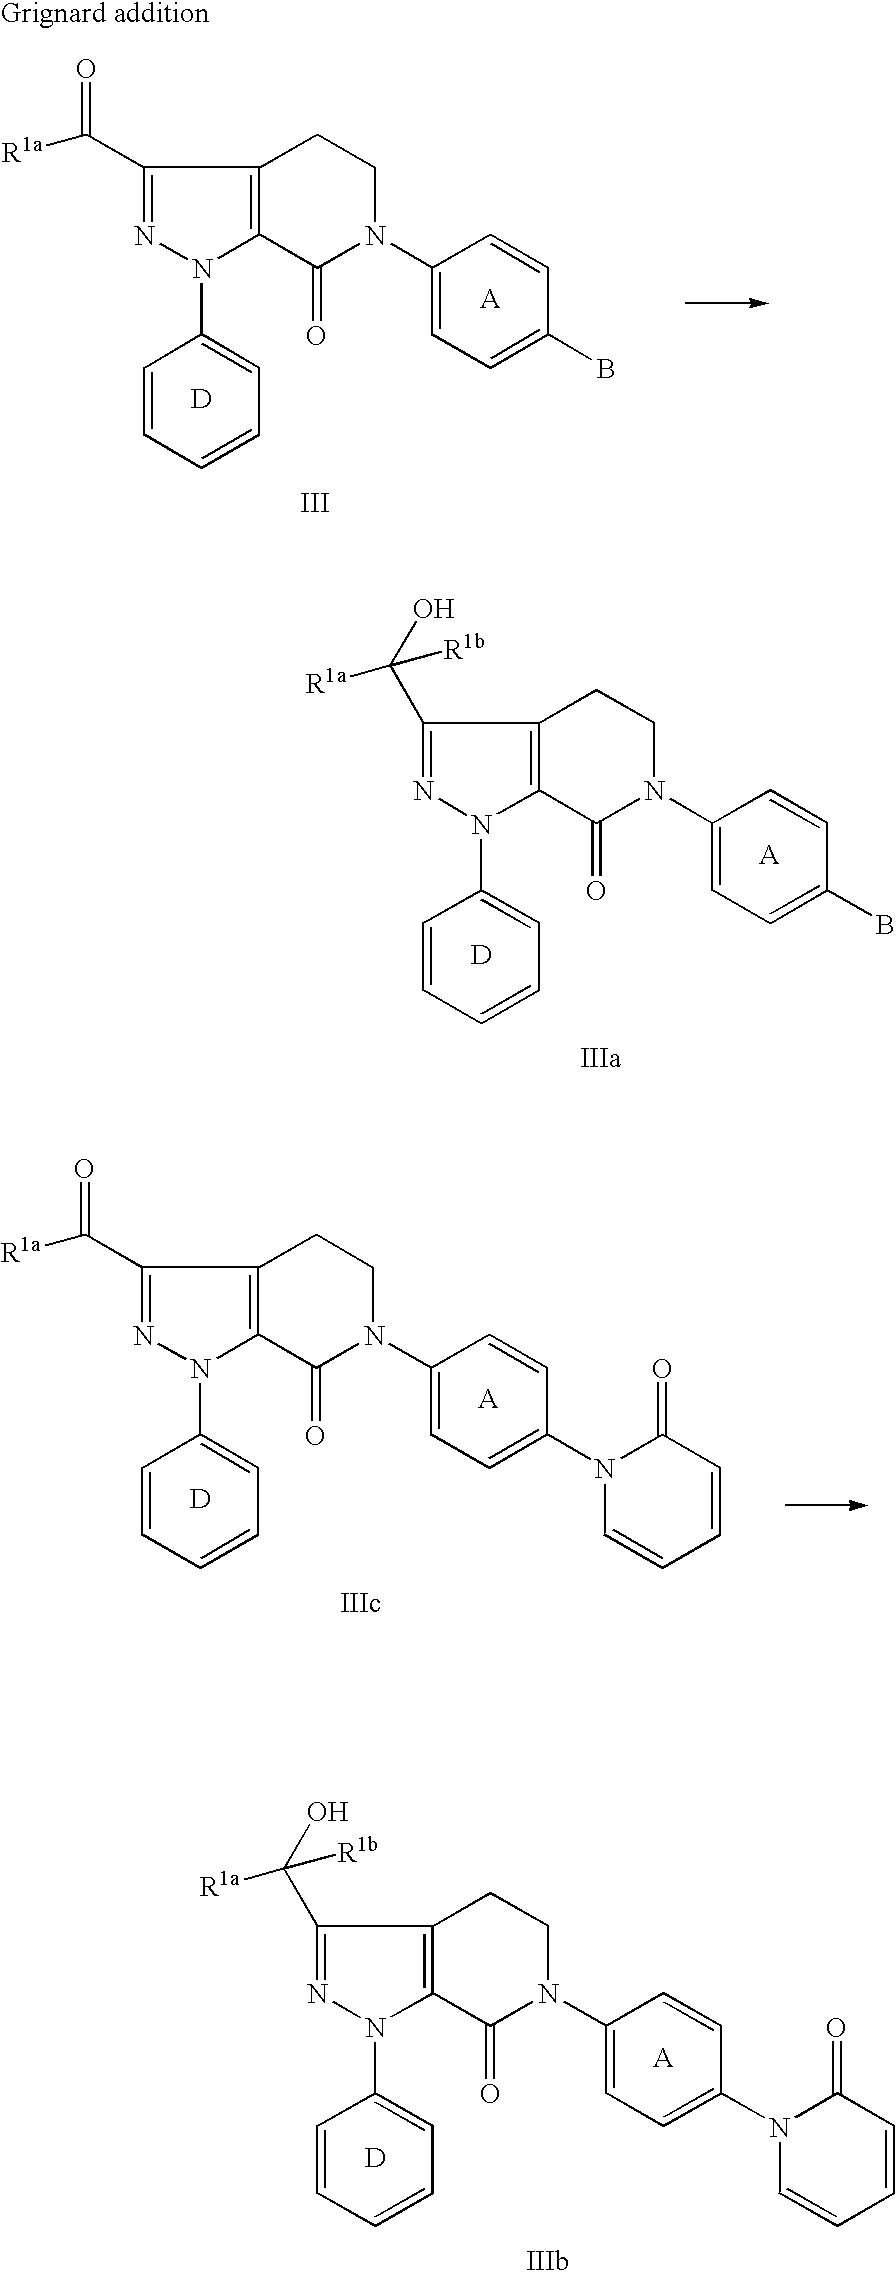 grignard synthesis of trimethylphenol A new biaryl phosphine ligand, me 3 (ome)tbuxphos (l3), was designed as a surrogate for me 4 tbuxphos (l1)the me 3 (ome)tbuxphos could be prepared in a chromatography-free manner from inexpensive and readily available 2,3,6-trimethylphenol.